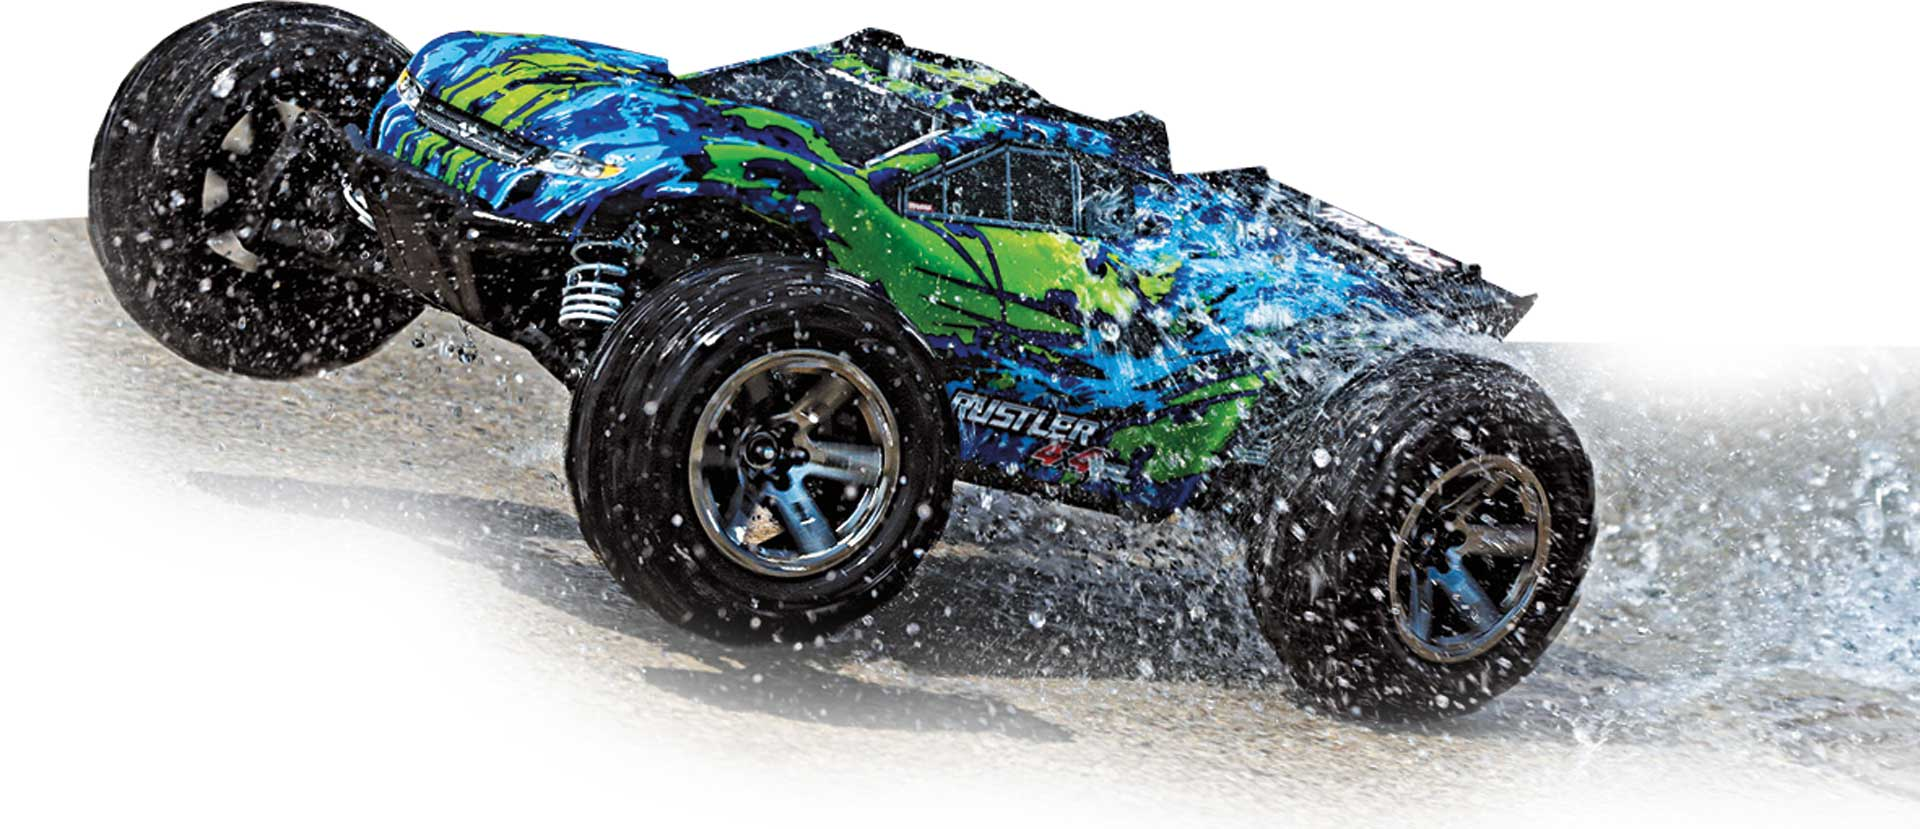 TRAXXAS RUSTLER 4X4 BRUSHLESS VXL GREEN / BLUE RTR 1/10 WITHOUT BATTERY, LINK CAPABLE